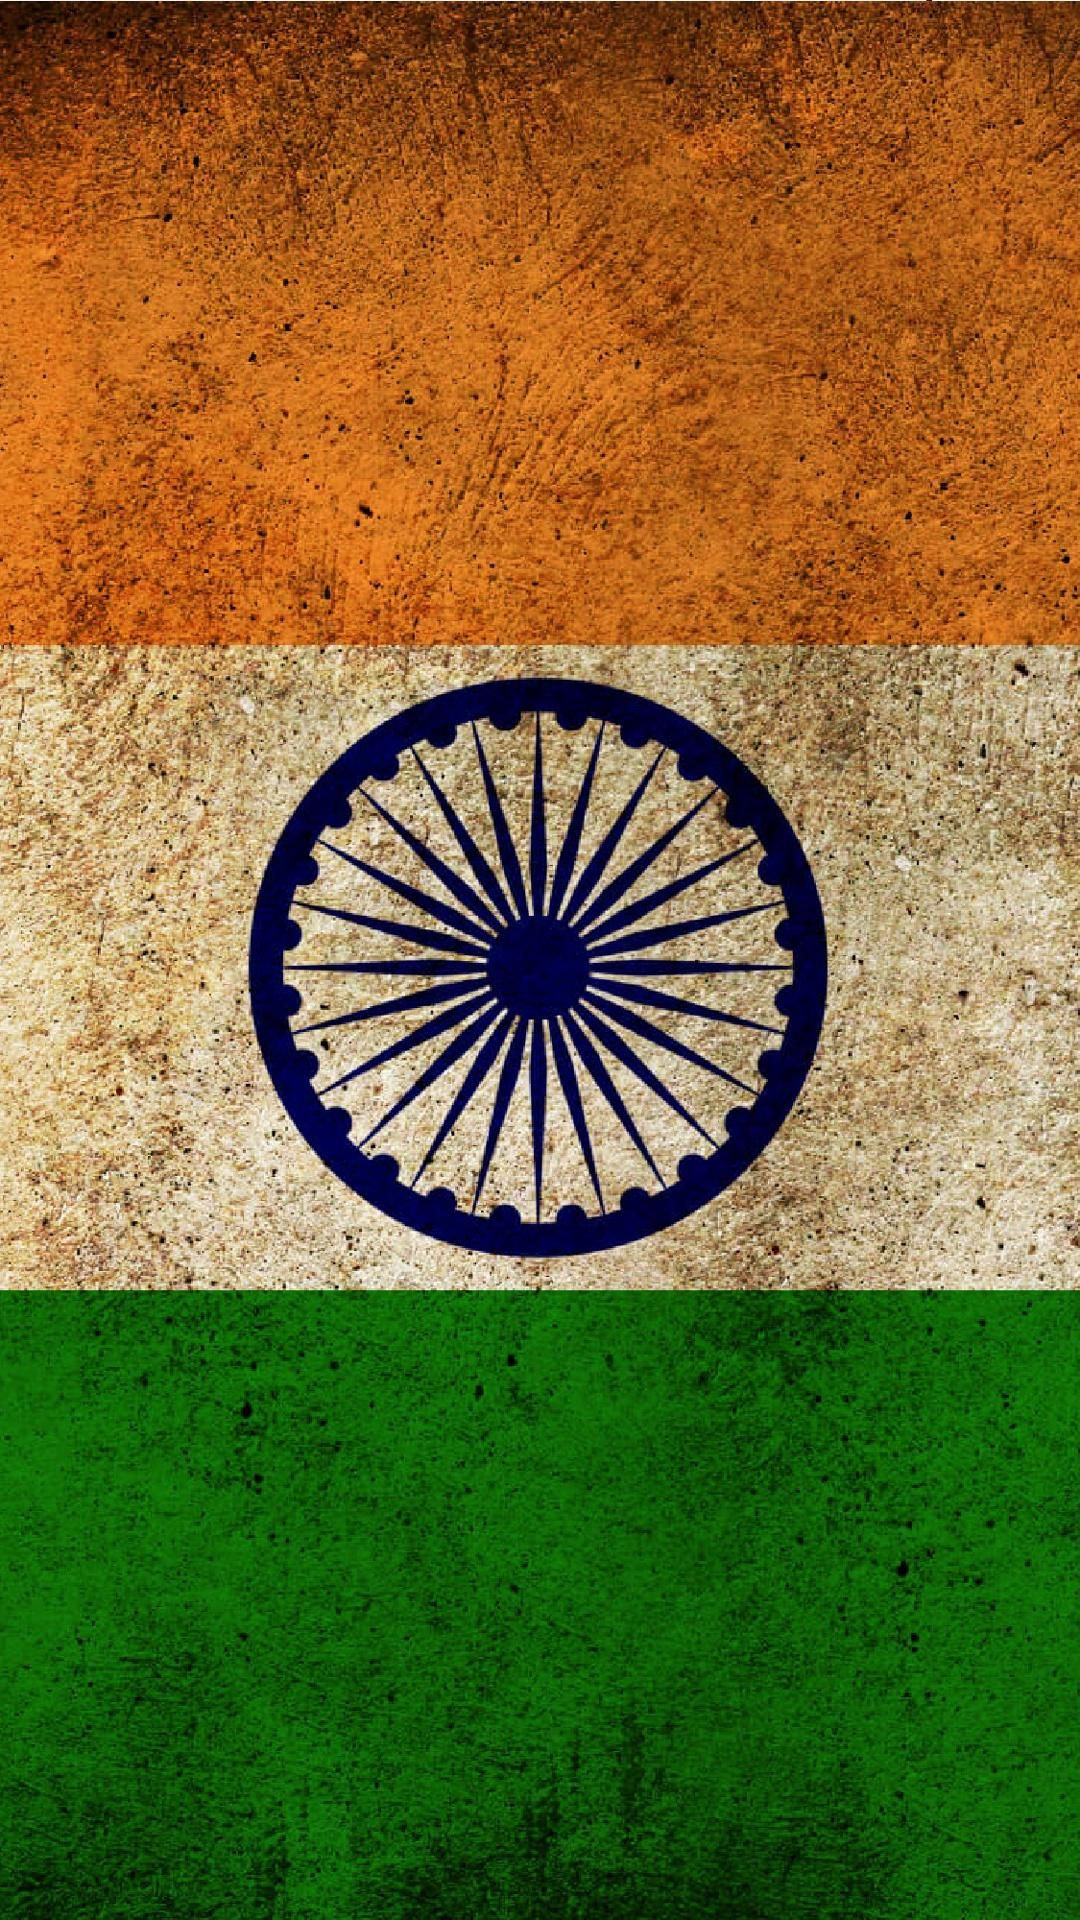 Indian Flag Indian Flag Wallpaper Indian Flag Photos Indian Flag Images